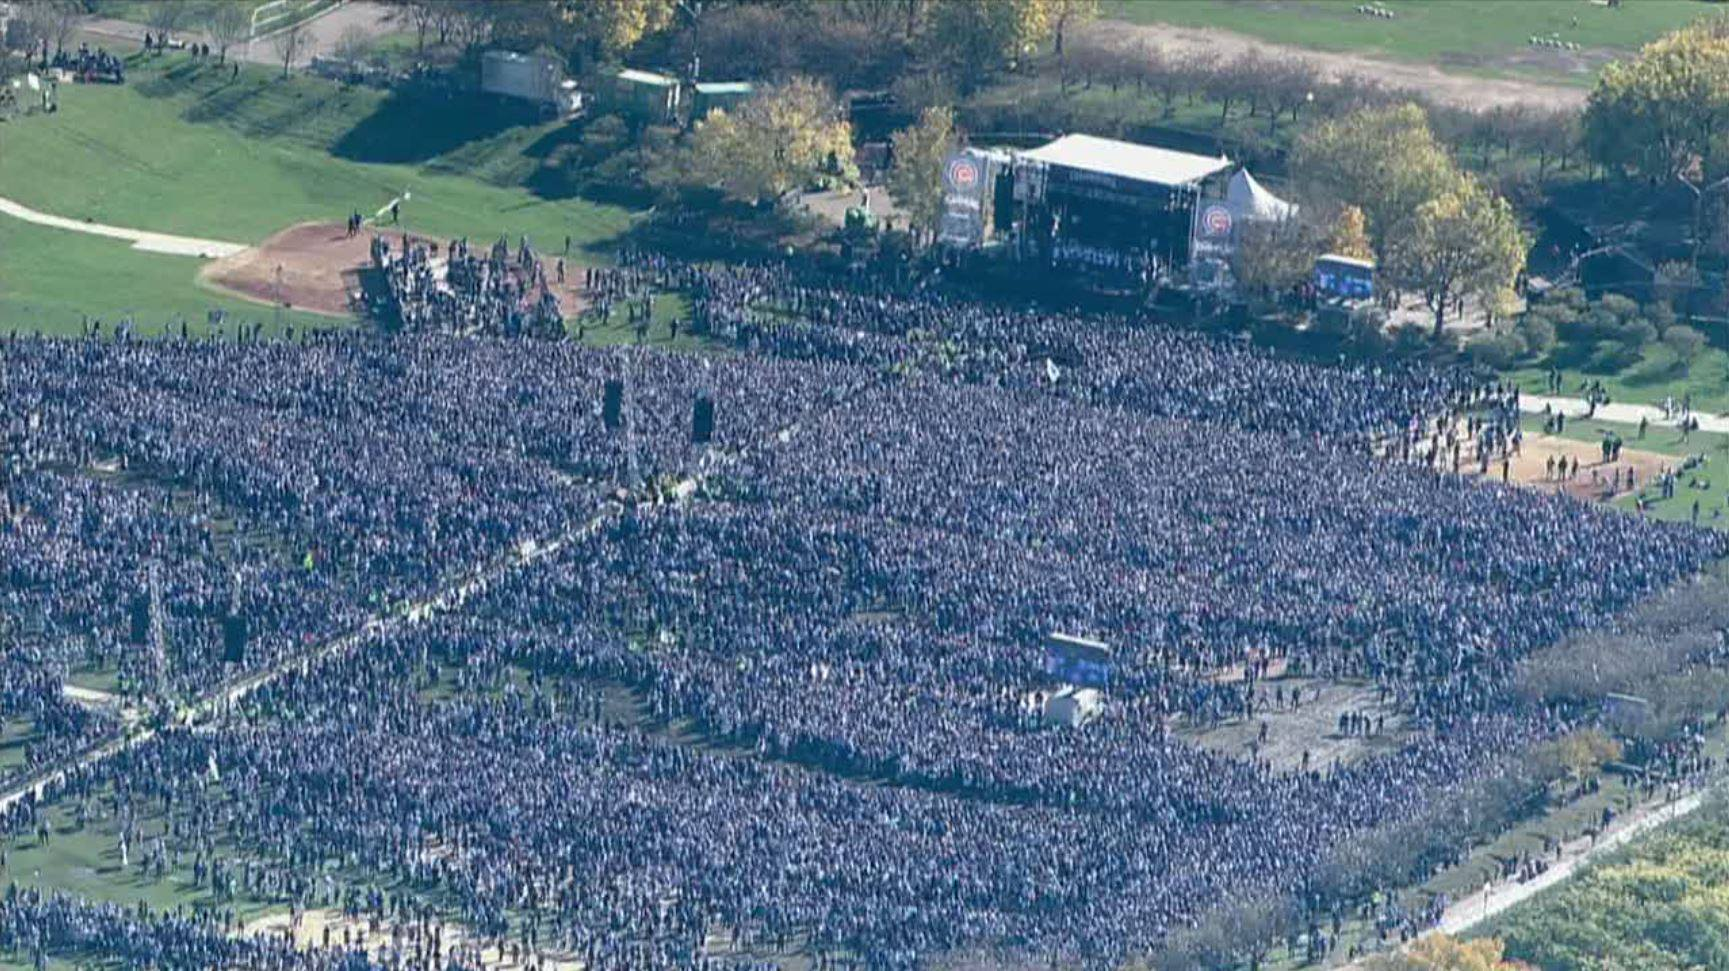 Cubs World Series celebration ranks as 7th largest gathering in human history